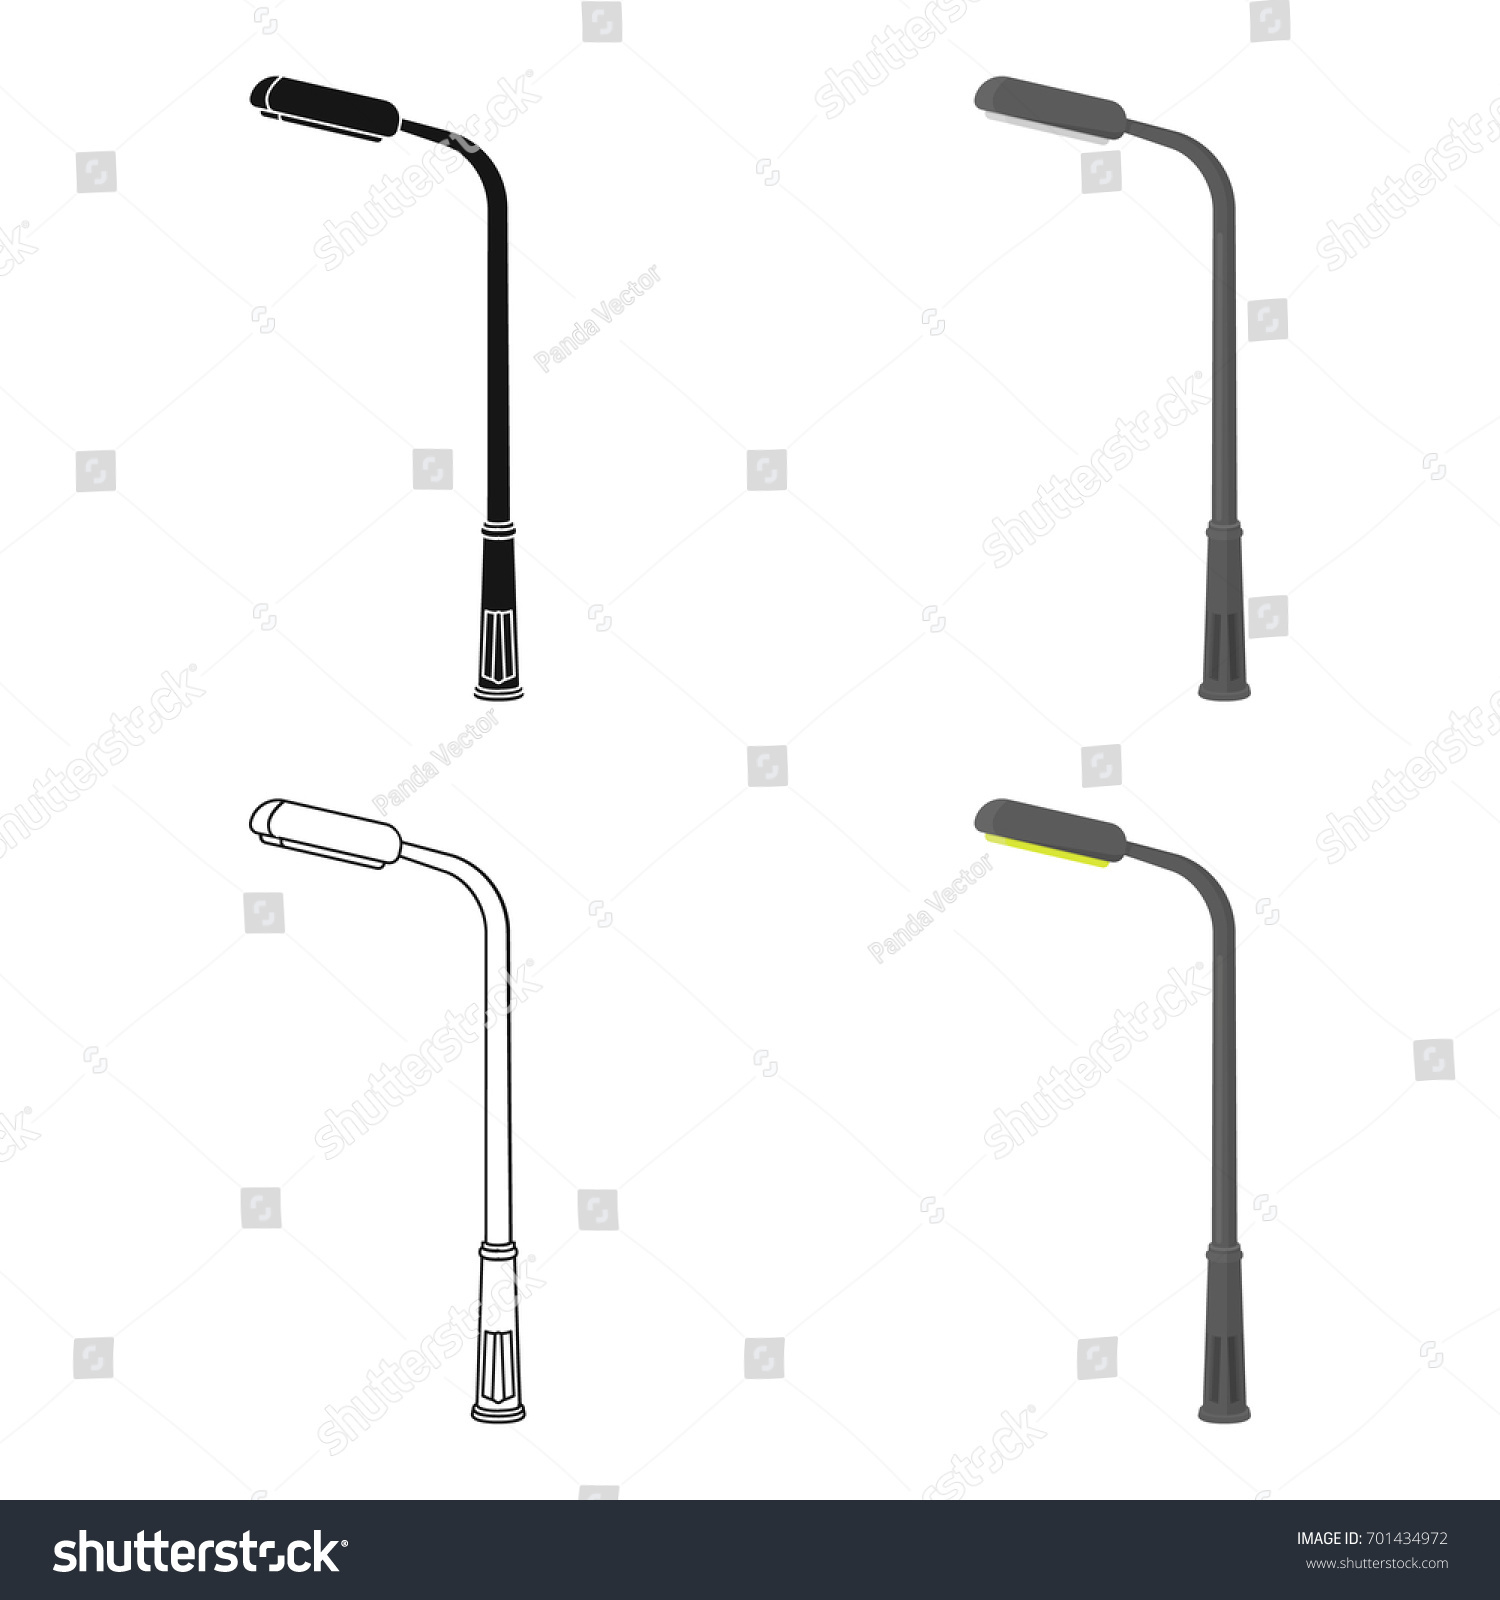 Modern Street Lamplamppost Single Icon Cartoon Stock Vector ... for Modern Street Lamp Post  117dqh